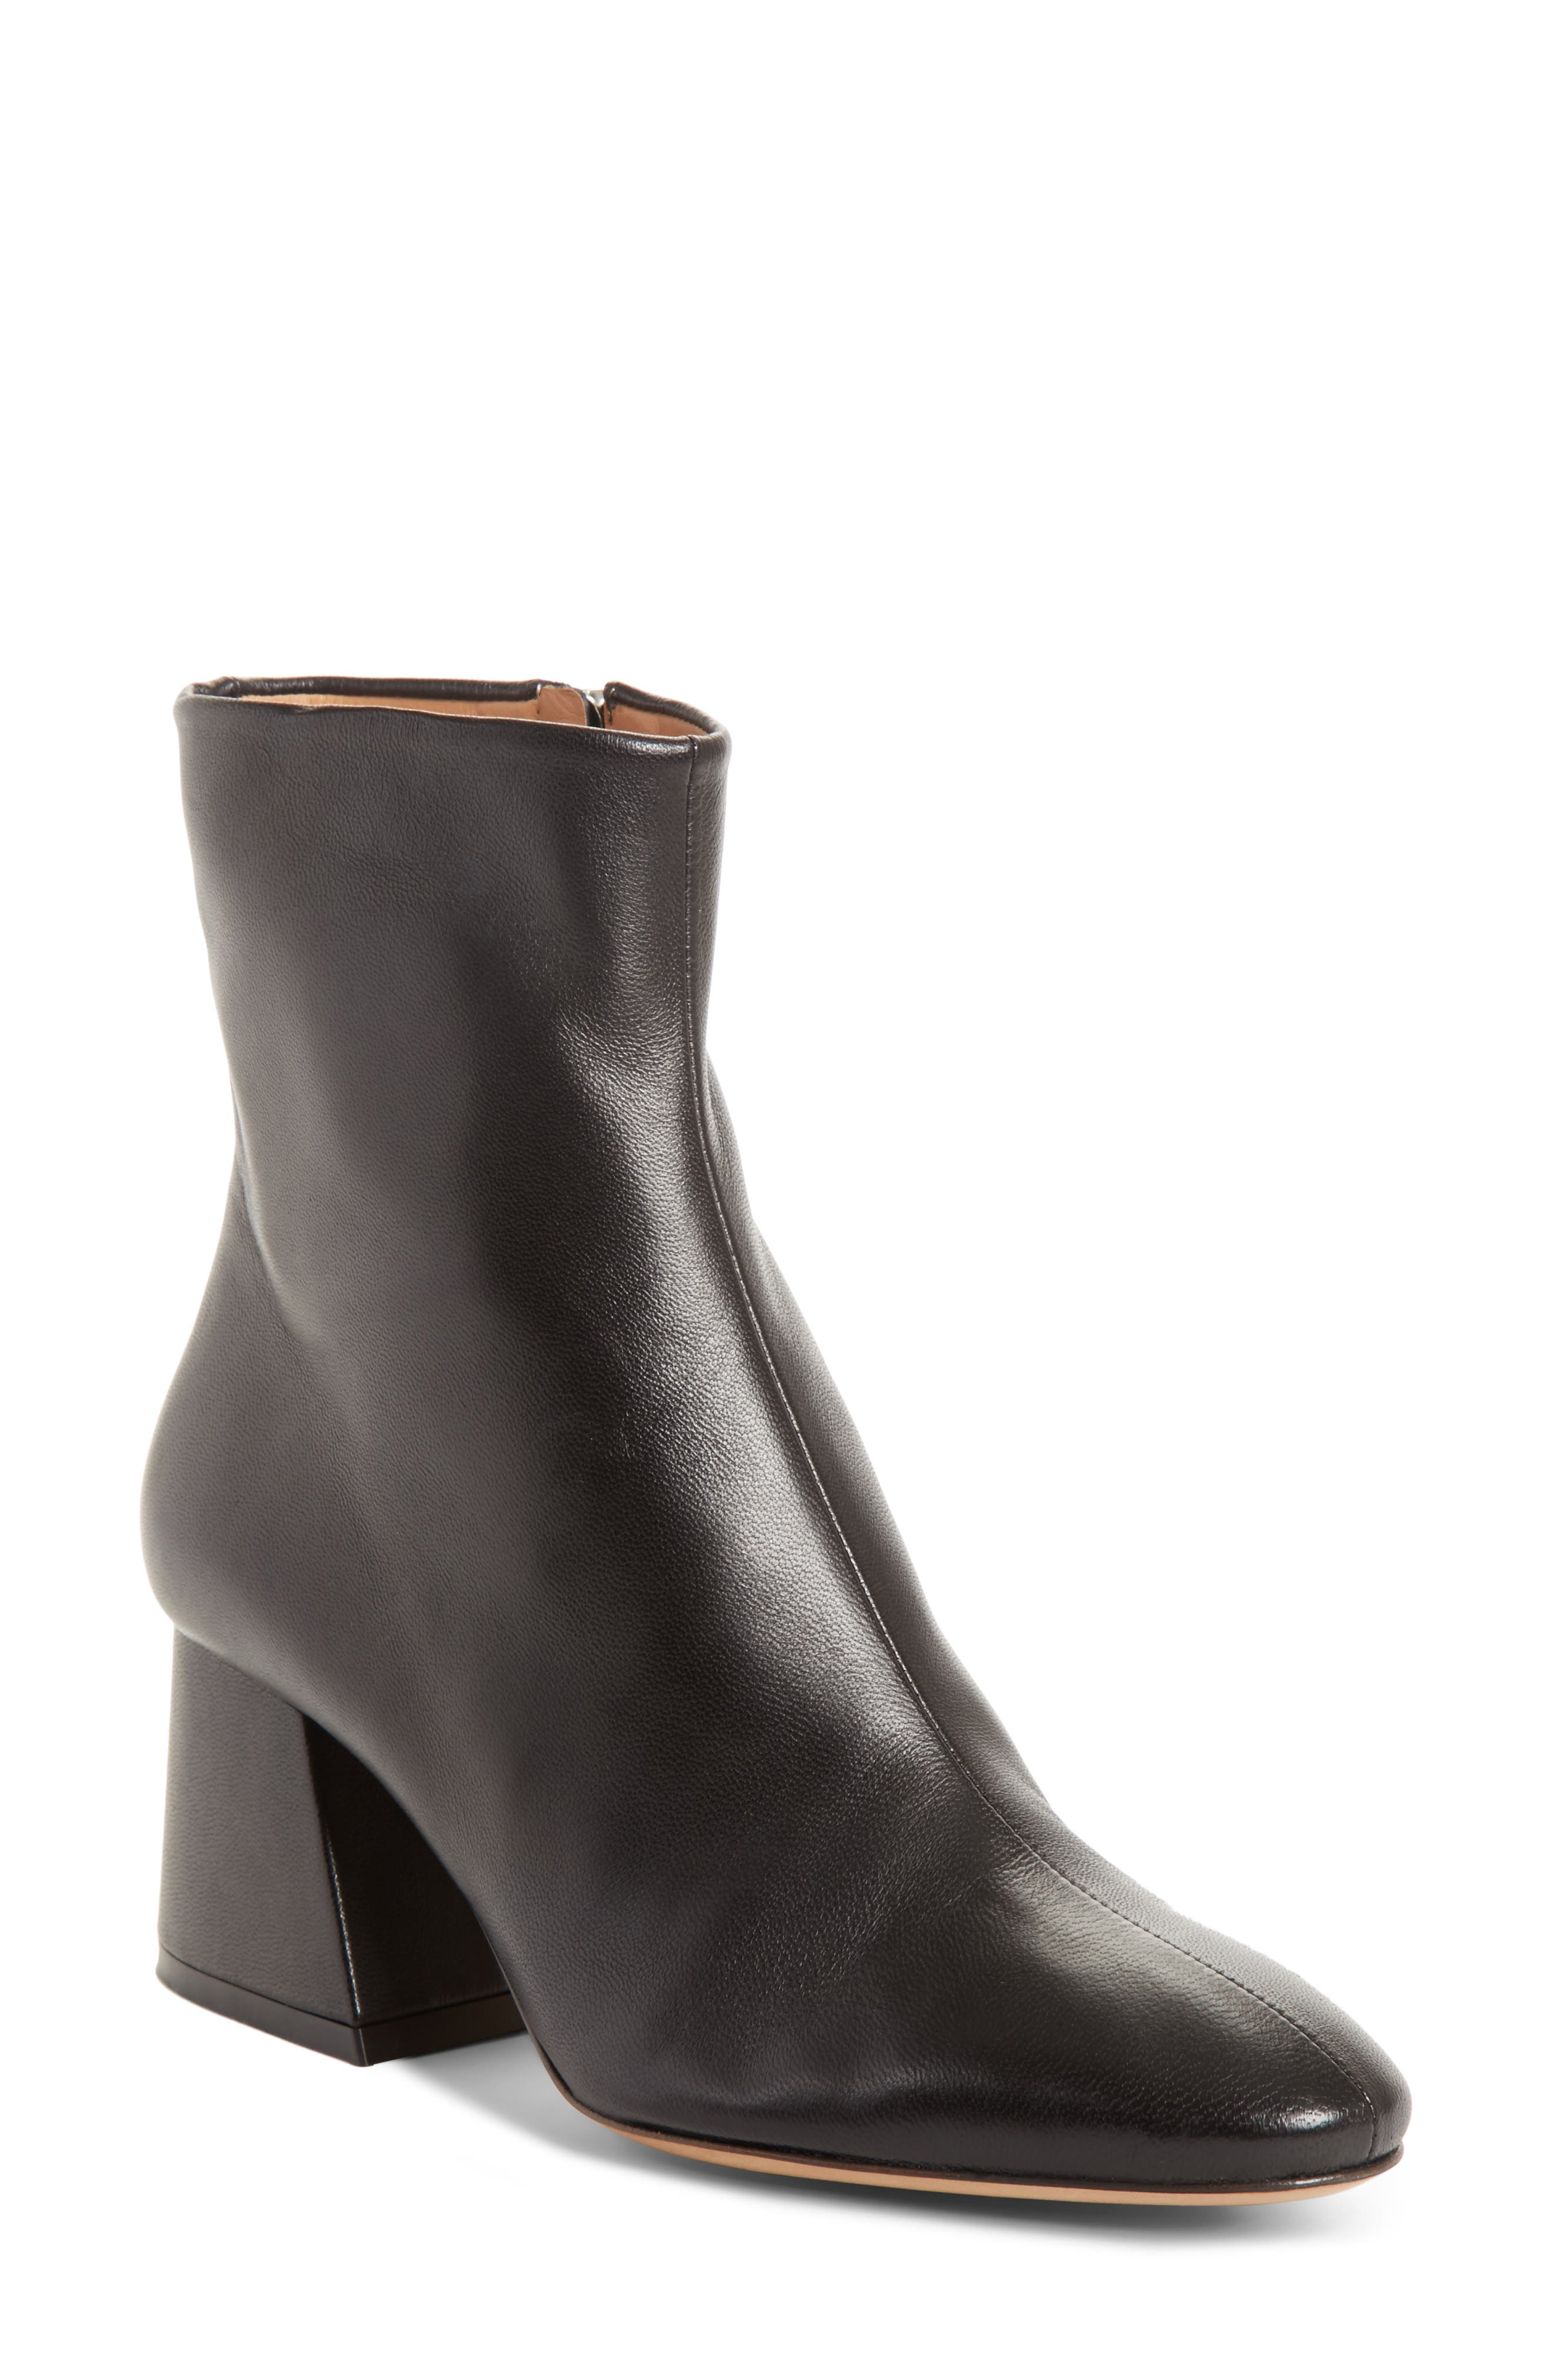 Flare Heel Ankle Boot,                         Main,                         color,